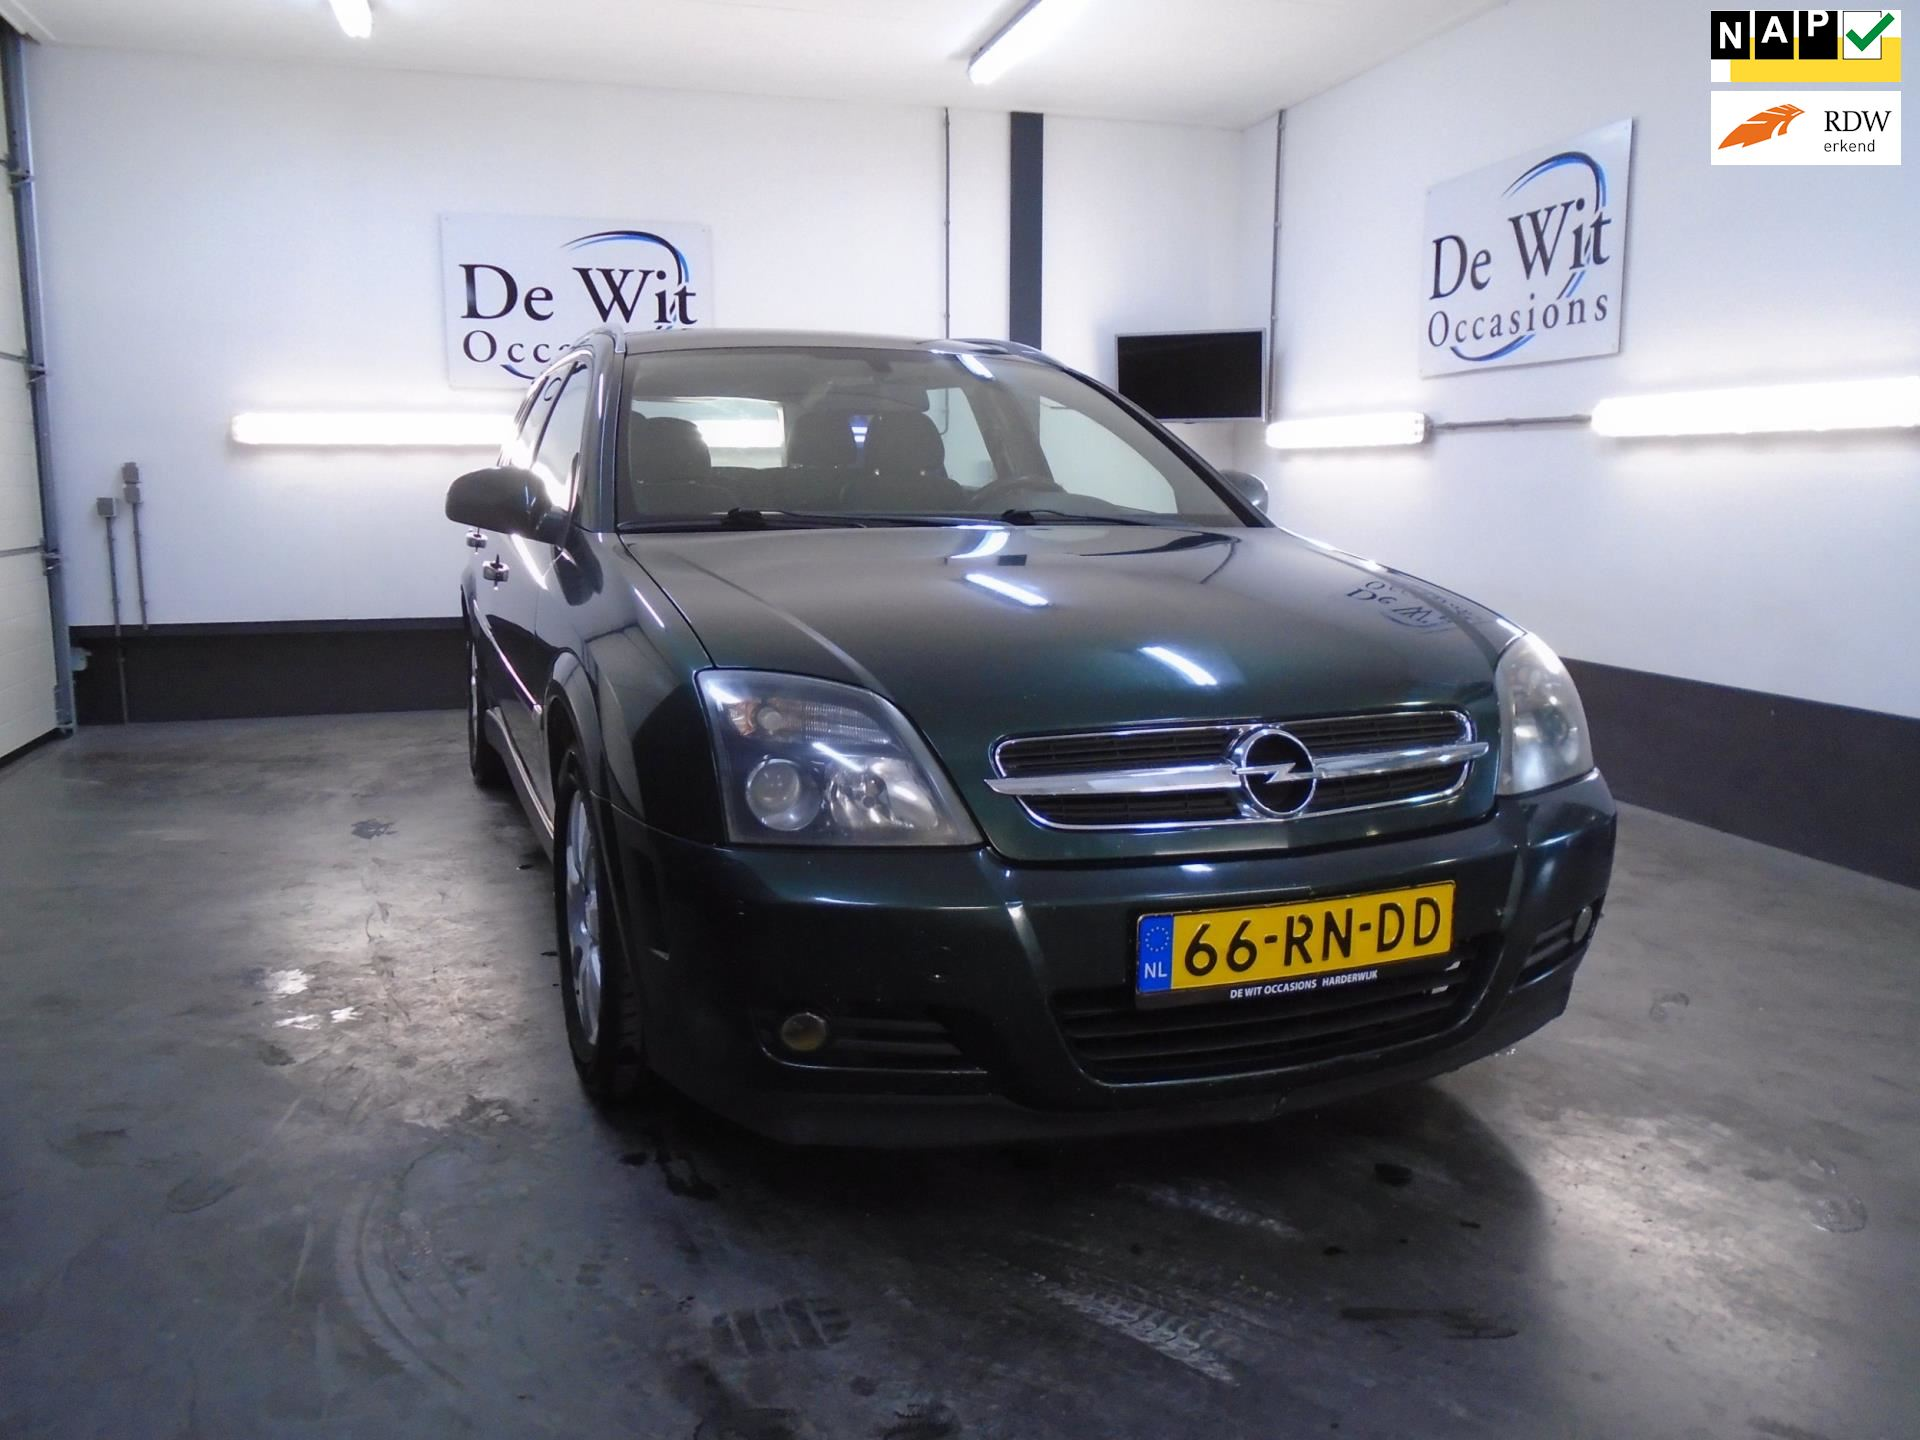 Opel Vectra Wagon occasion - De Wit Occasions